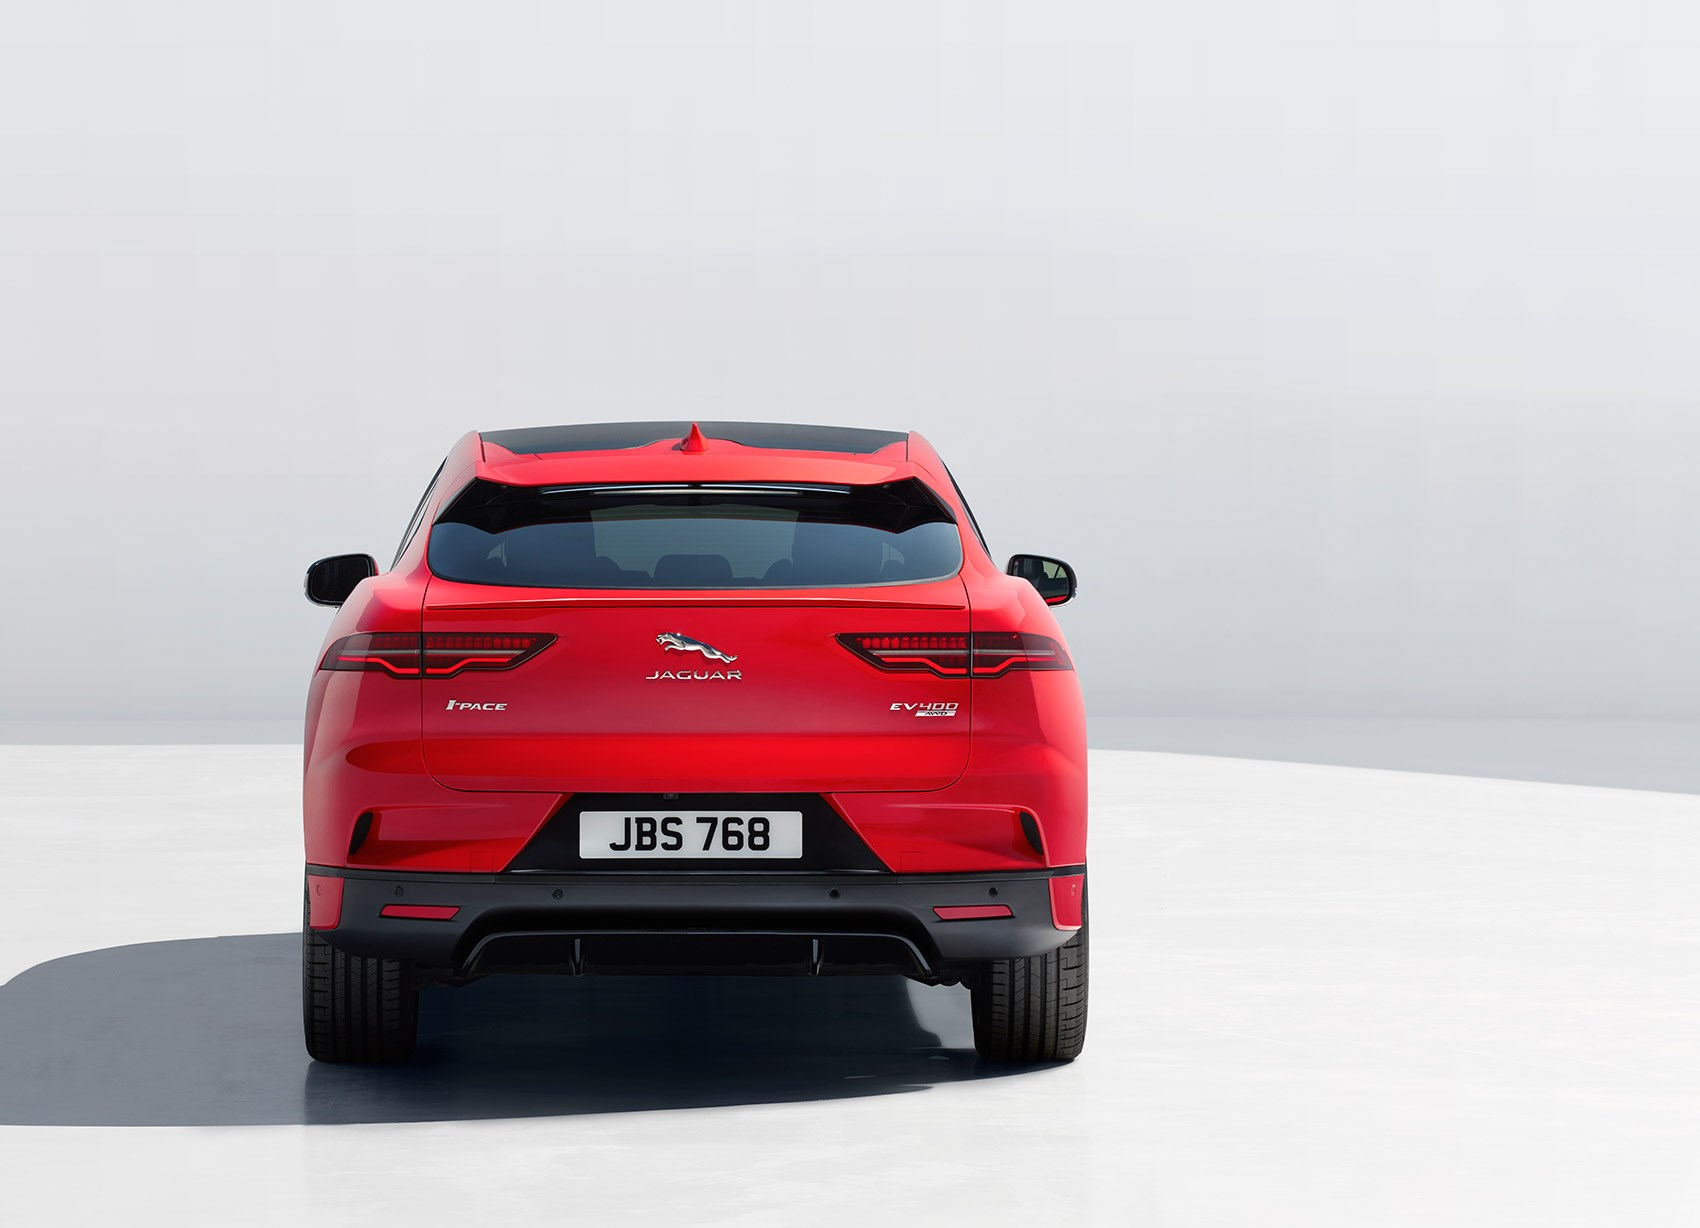 Jaguar Suv Price Uk Jaguar I Pace Electric Suv News Specs Prices Uk On